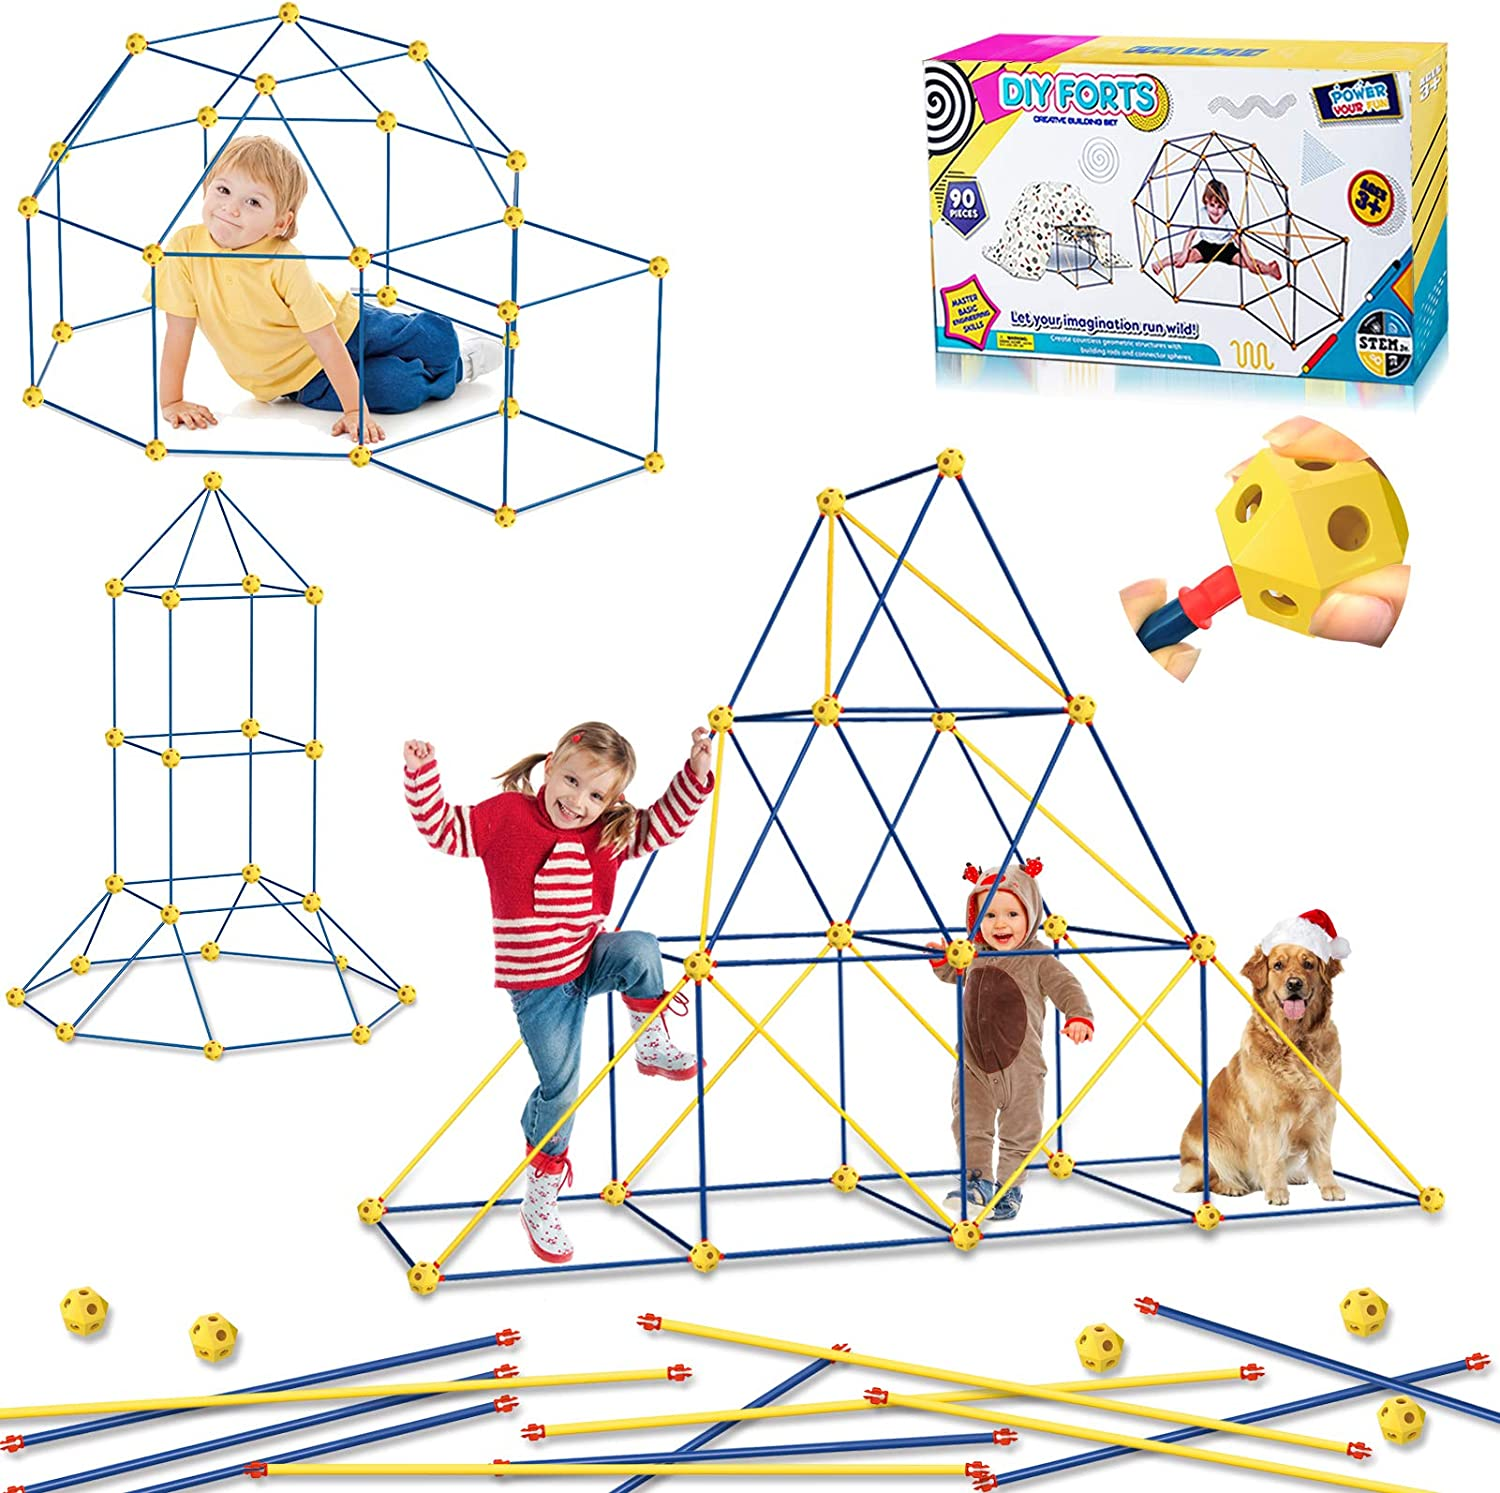 HOMOFY Fort Building Kit Tent for Kids Play Tents - Fun Forts STEM Building Toys,Play Tent Fort Kit with 90 Pcs Foldable Playhouse Toy for Indoor & Outdoor Gifts for Kids 3 4 5 6 Year Olds Boys Girls